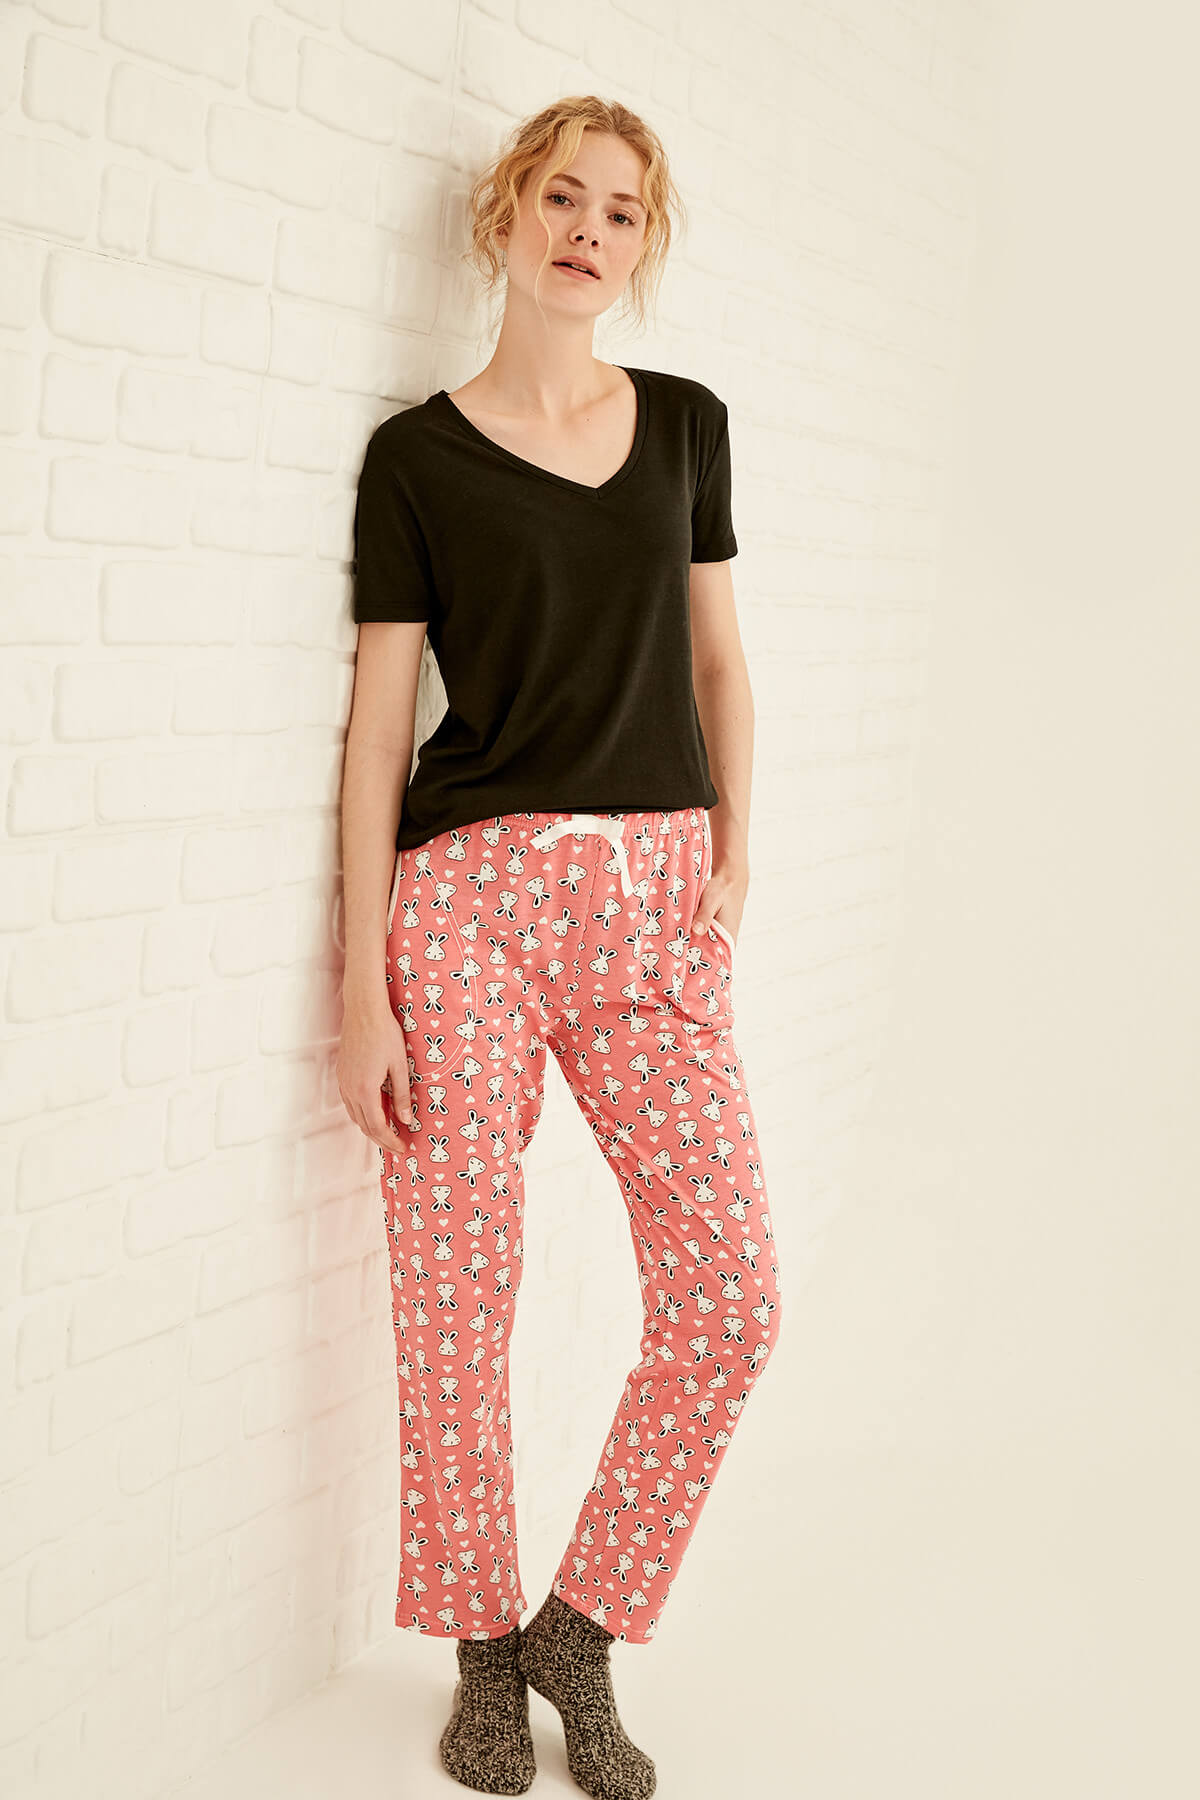 Trendyol Pink Rabbit Patterned Bottoms